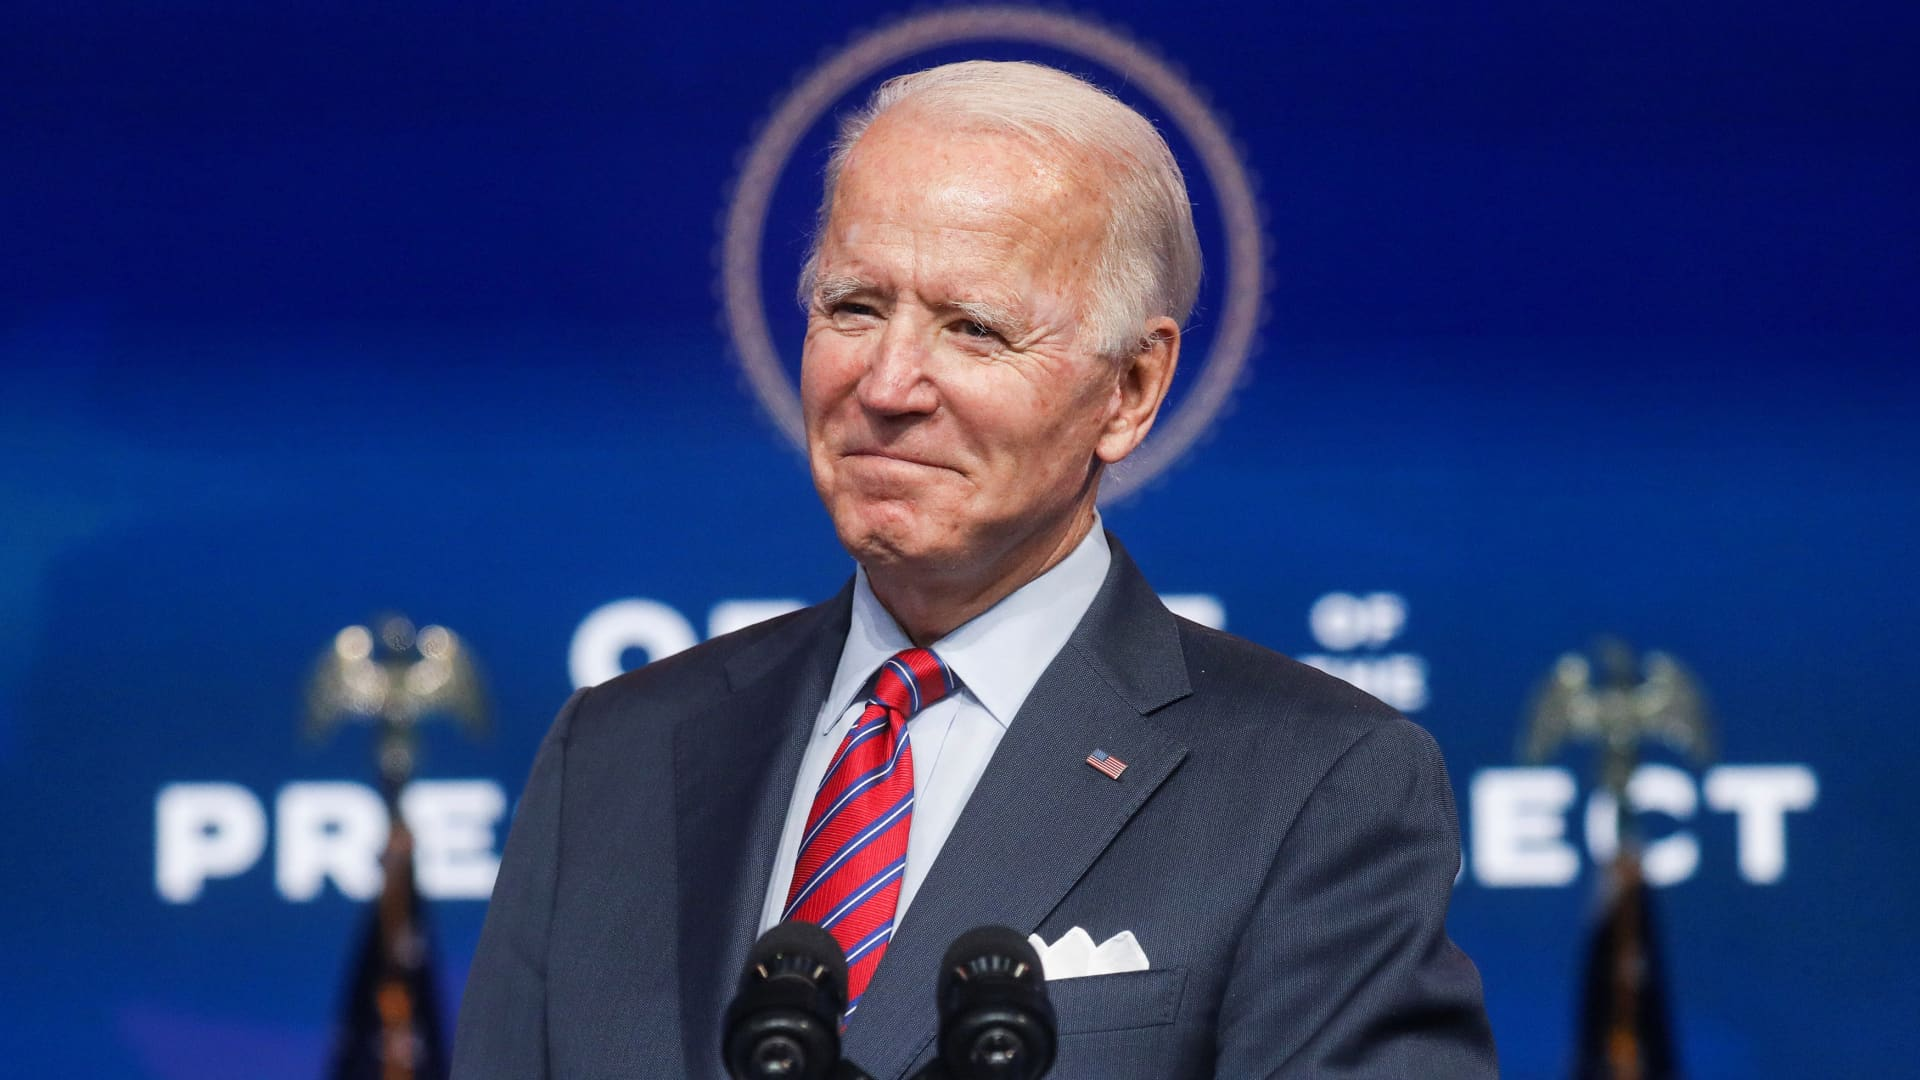 U.S. President-elect Joe Biden speaks about the economy and the final U.S. jobs report of 2020 at his transition headquarters in Wilmington, Delaware, U.S., December 4, 2020.